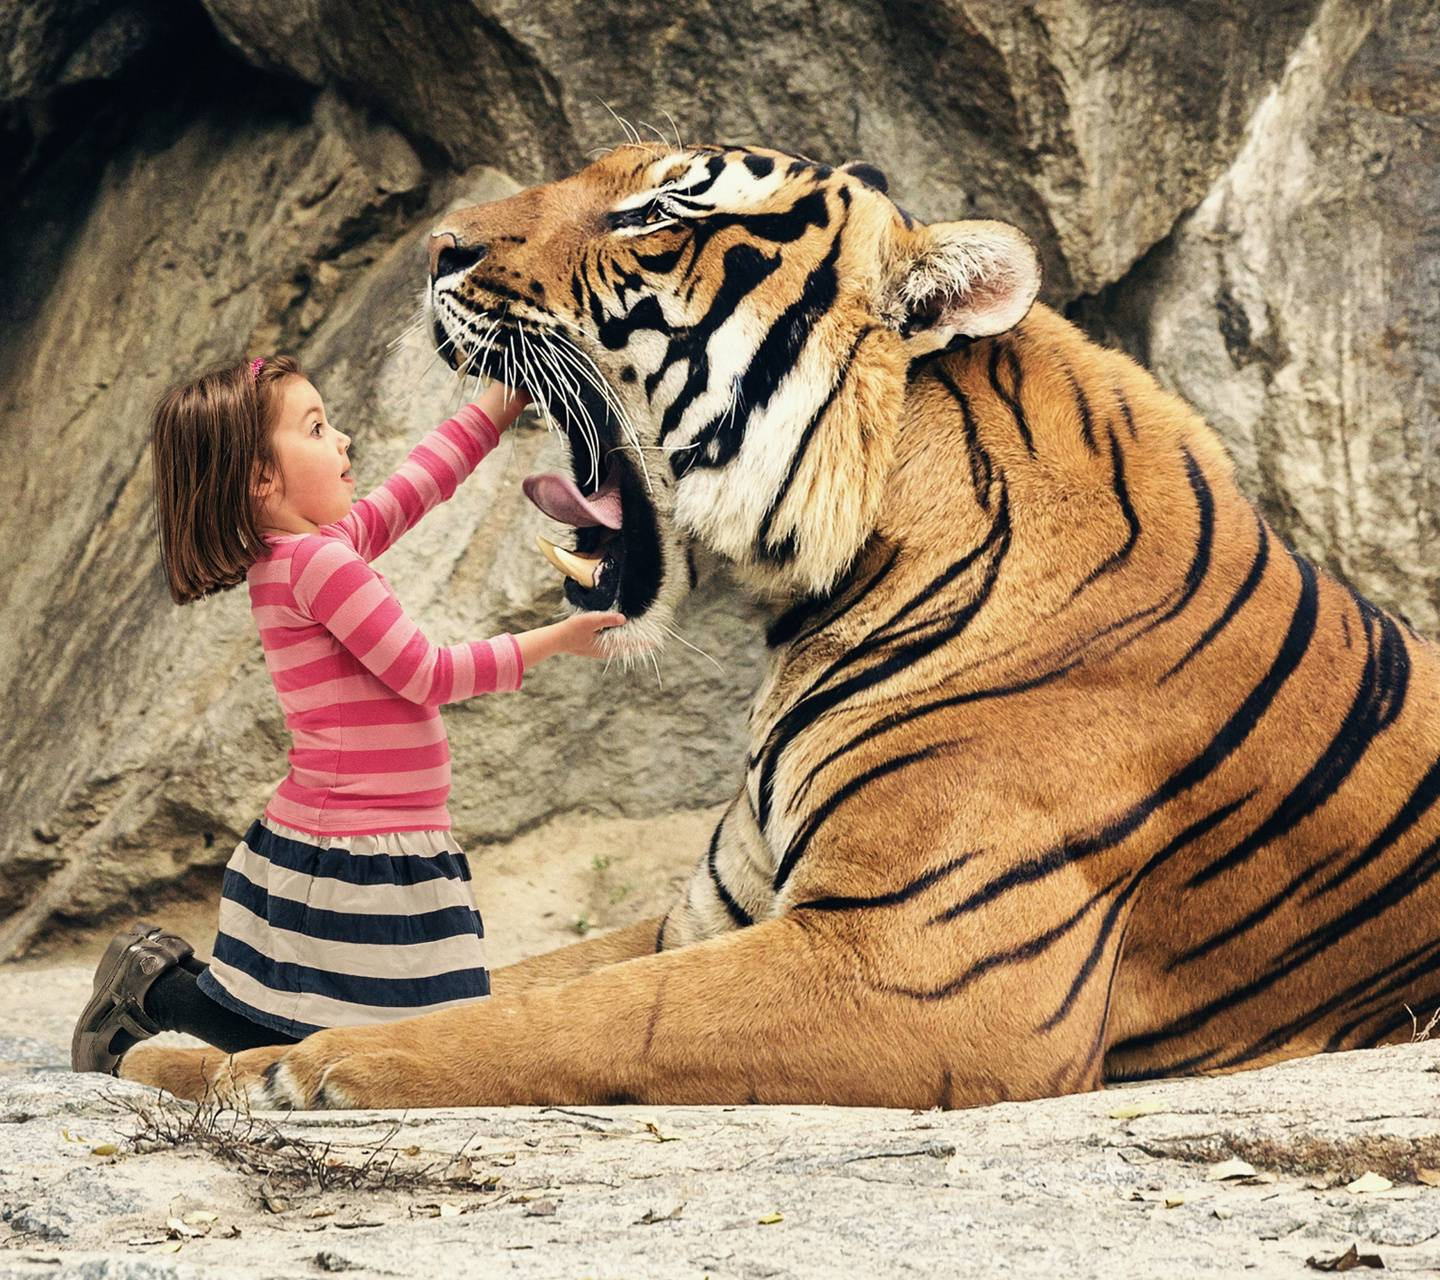 Tiger and Girl